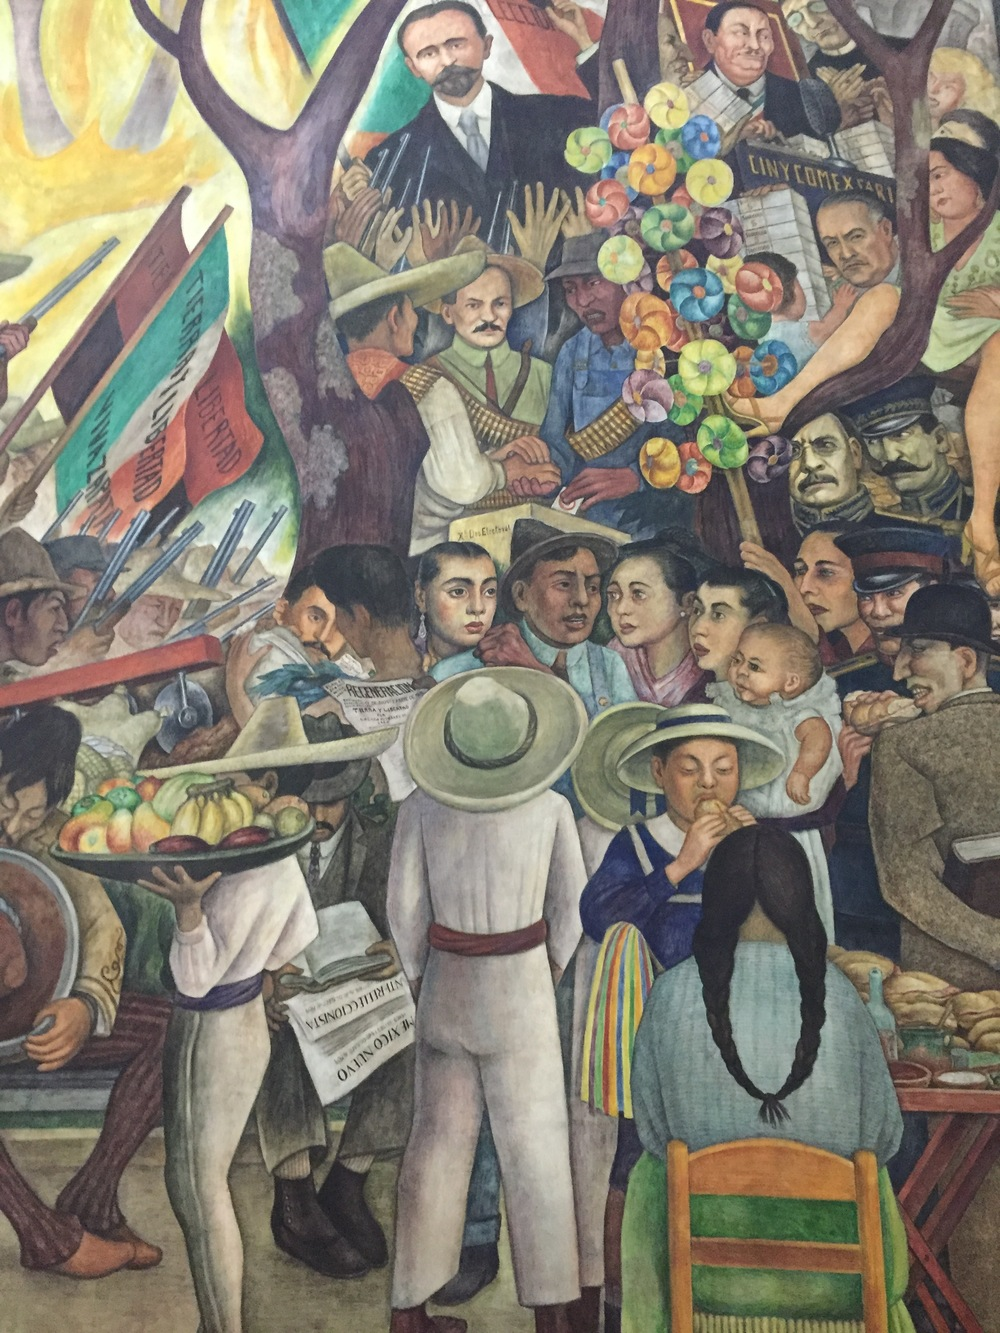 Right portion of mural